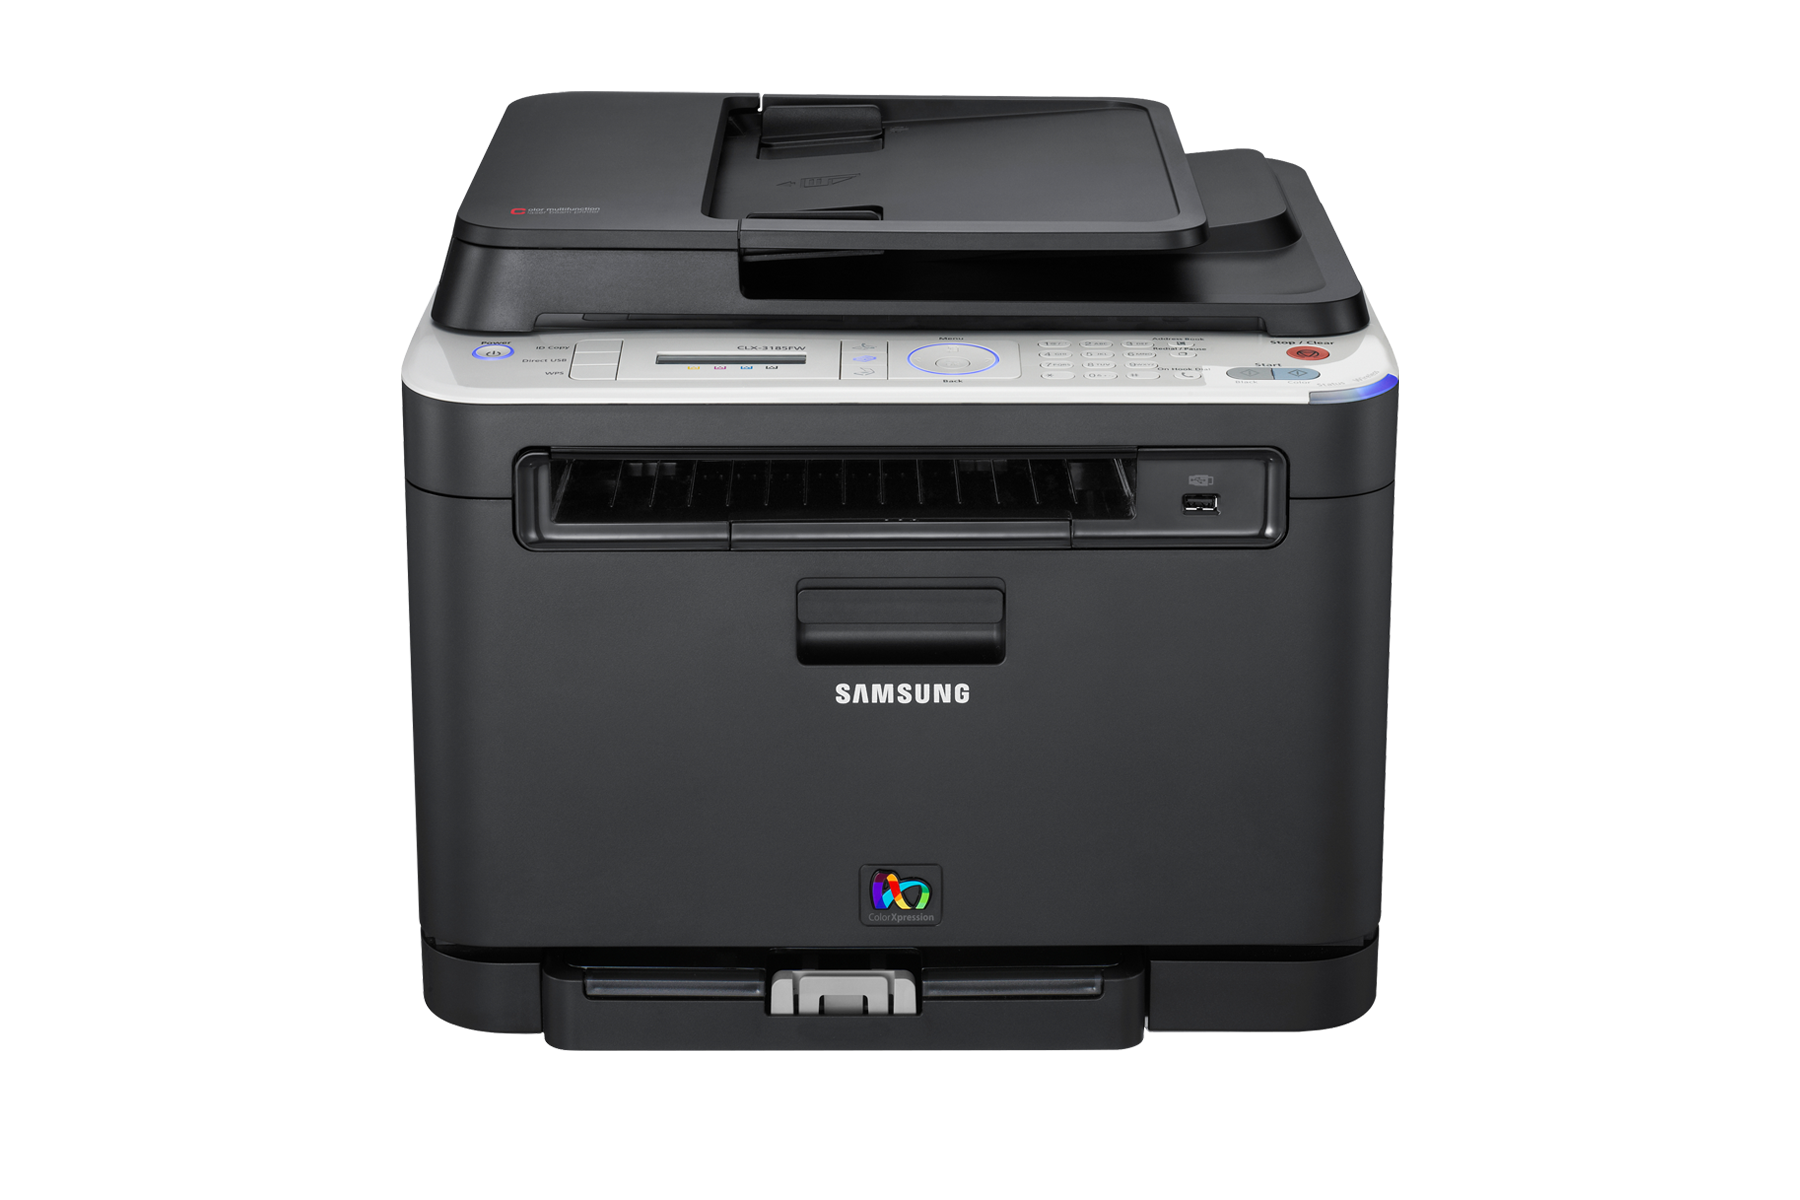 CLX-3185FW CLX-3185FW 16PPM Colour Laser Multifunction Printer